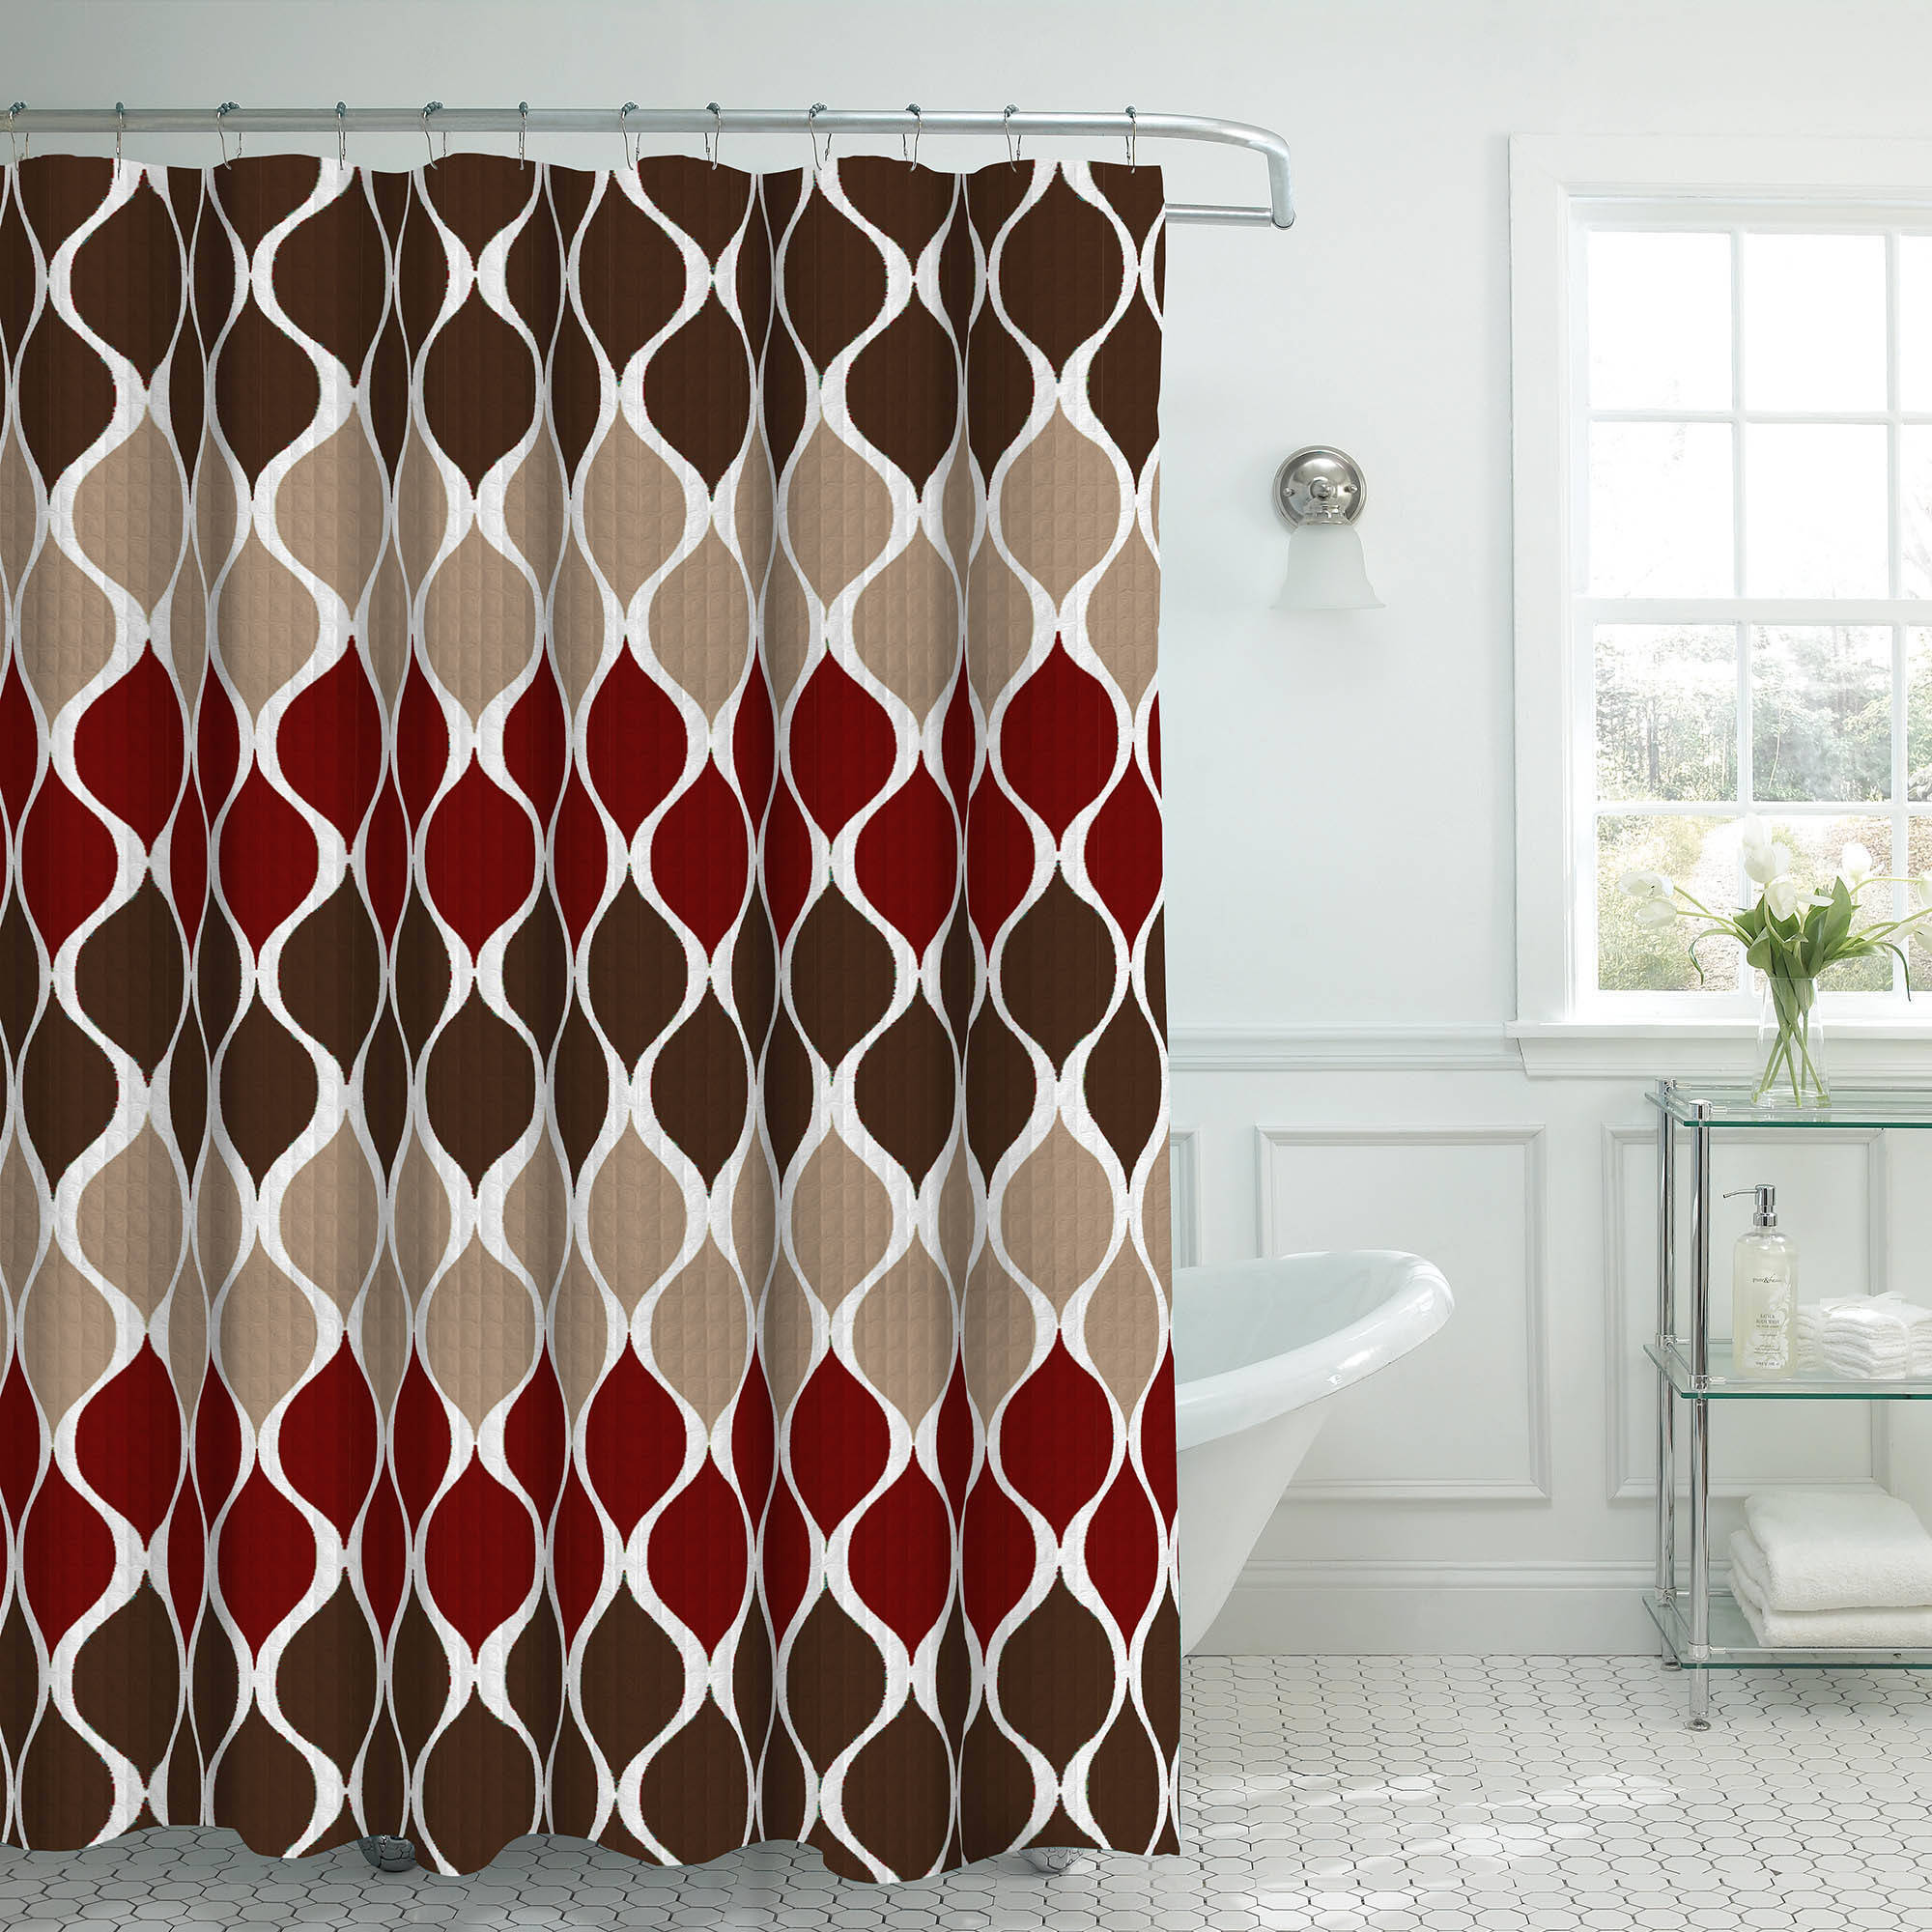 Bounce Comfort Oxford Weave Textured 13-Piece Shower Curtain Set with Metal Roller Hooks, Clarisse Espresso